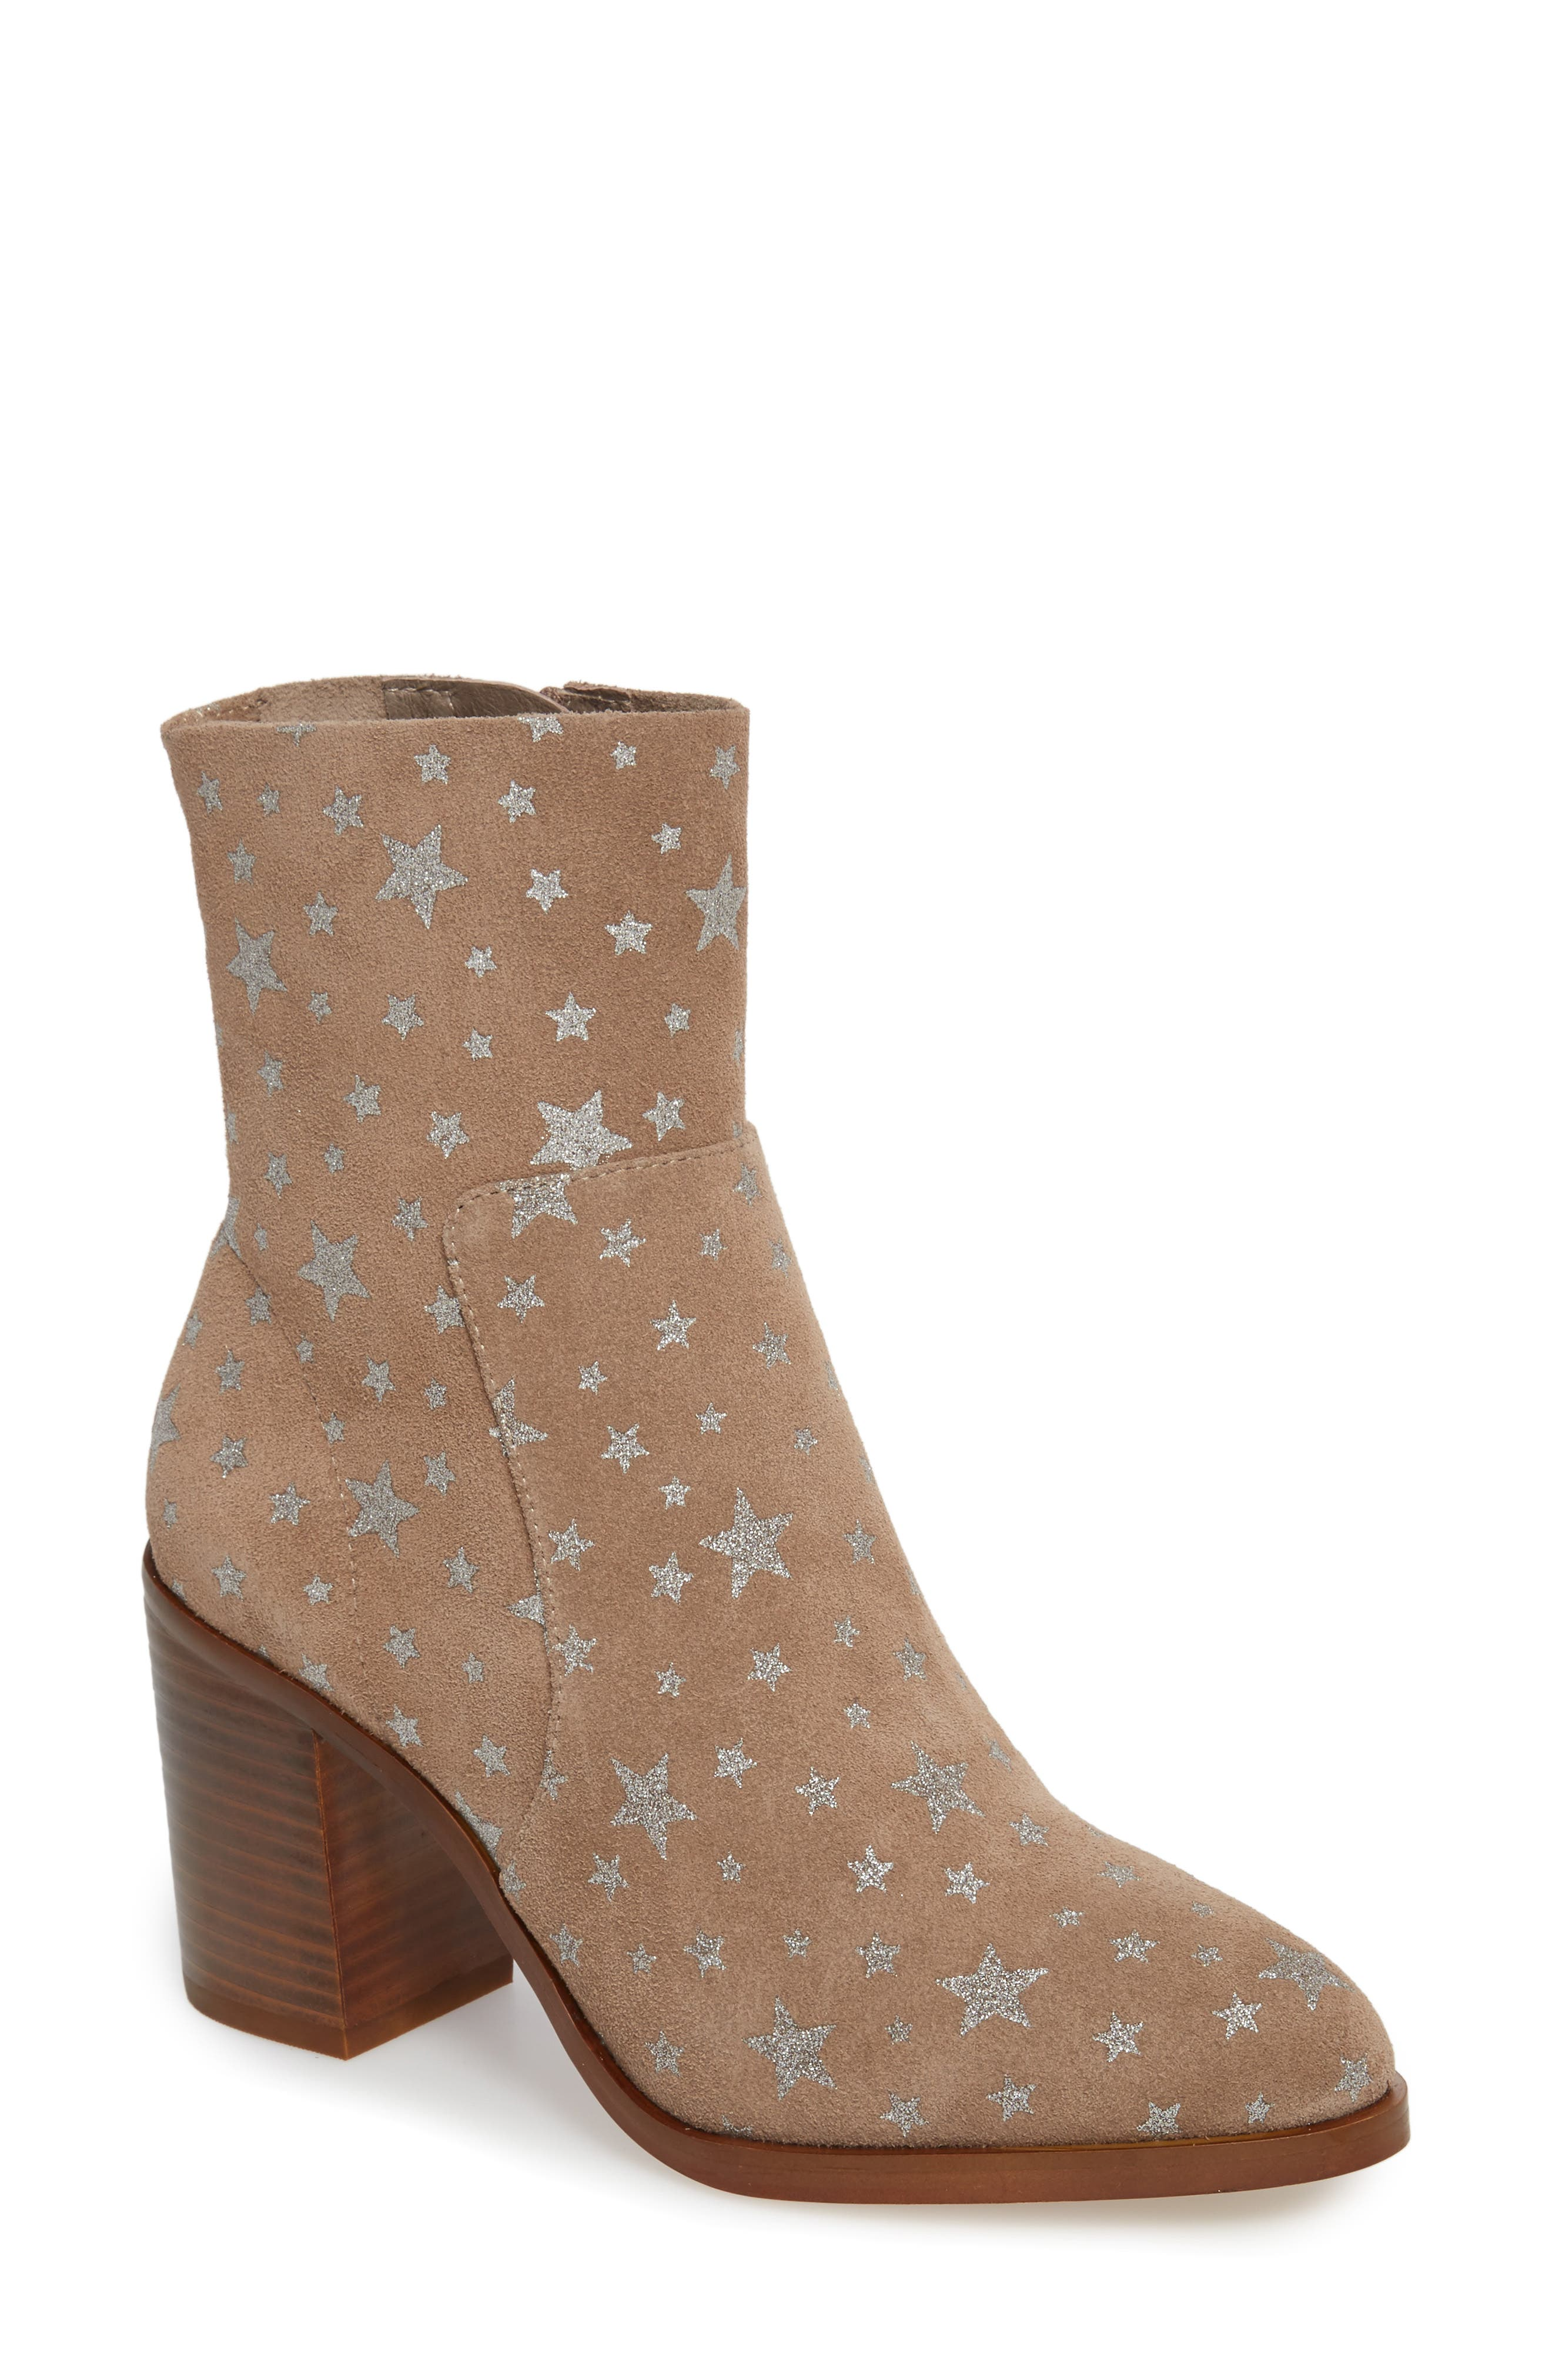 Steve Madden Reward Star Print Bootie (Women)